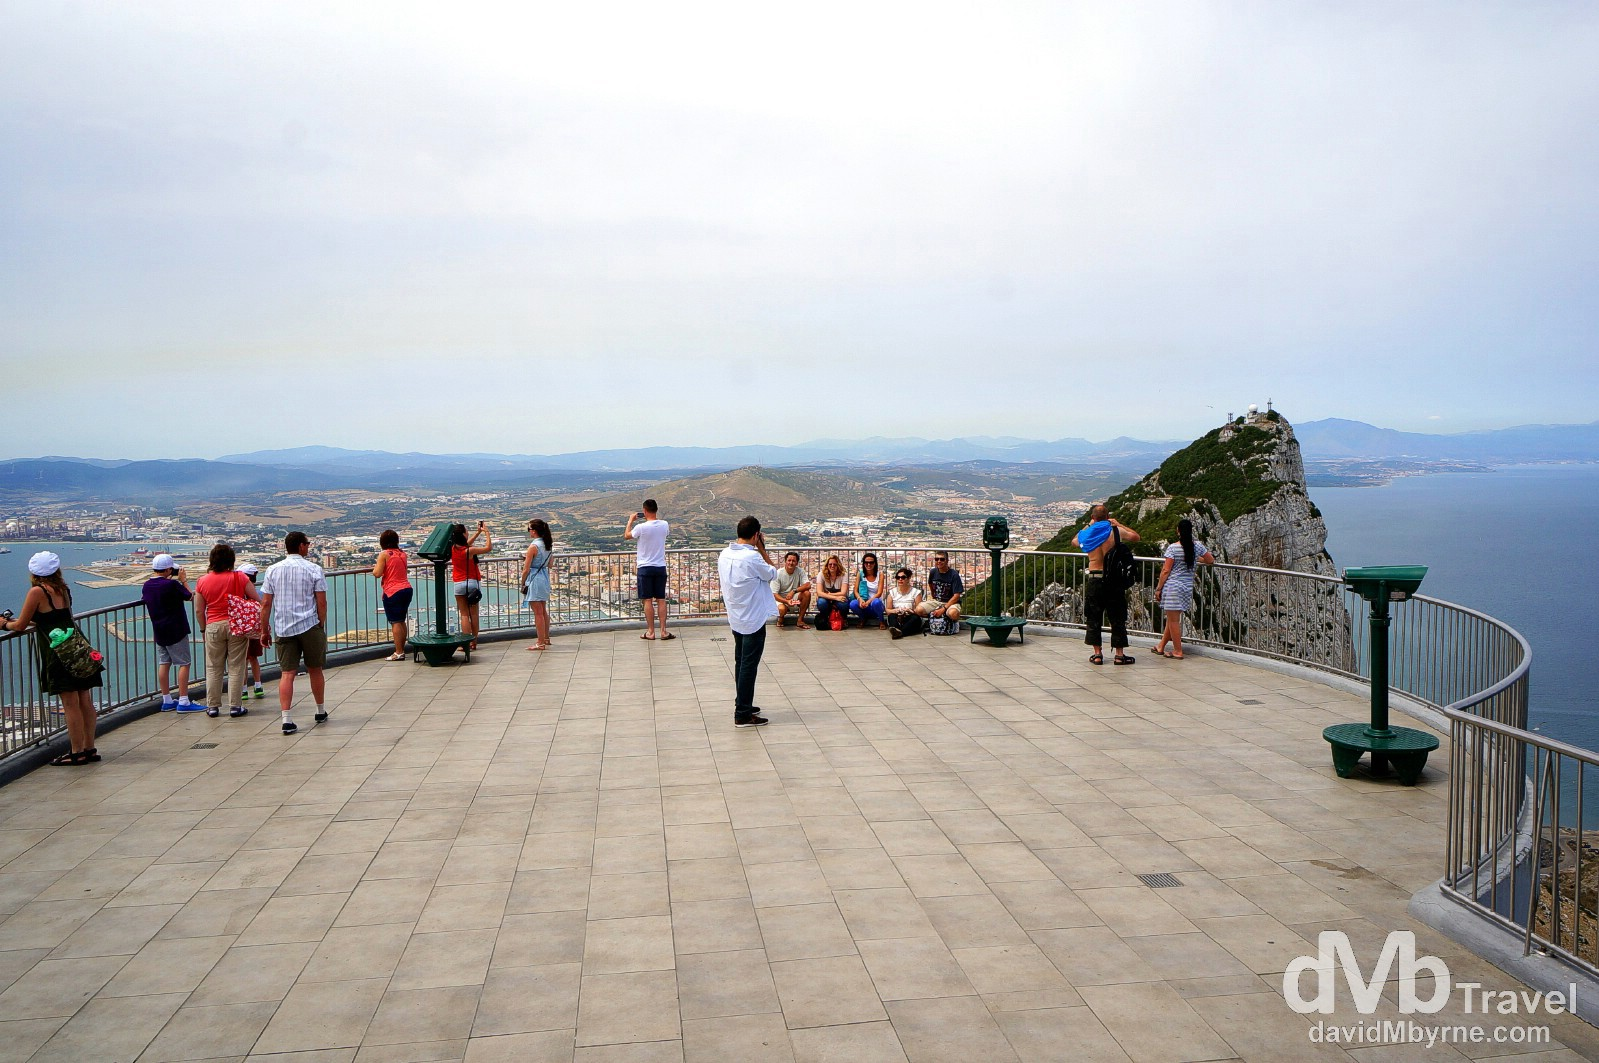 People on The Top of the Rock viewing deck in The Upper Rock Nature Reserve, Gibraltar. June 5th, 2014.